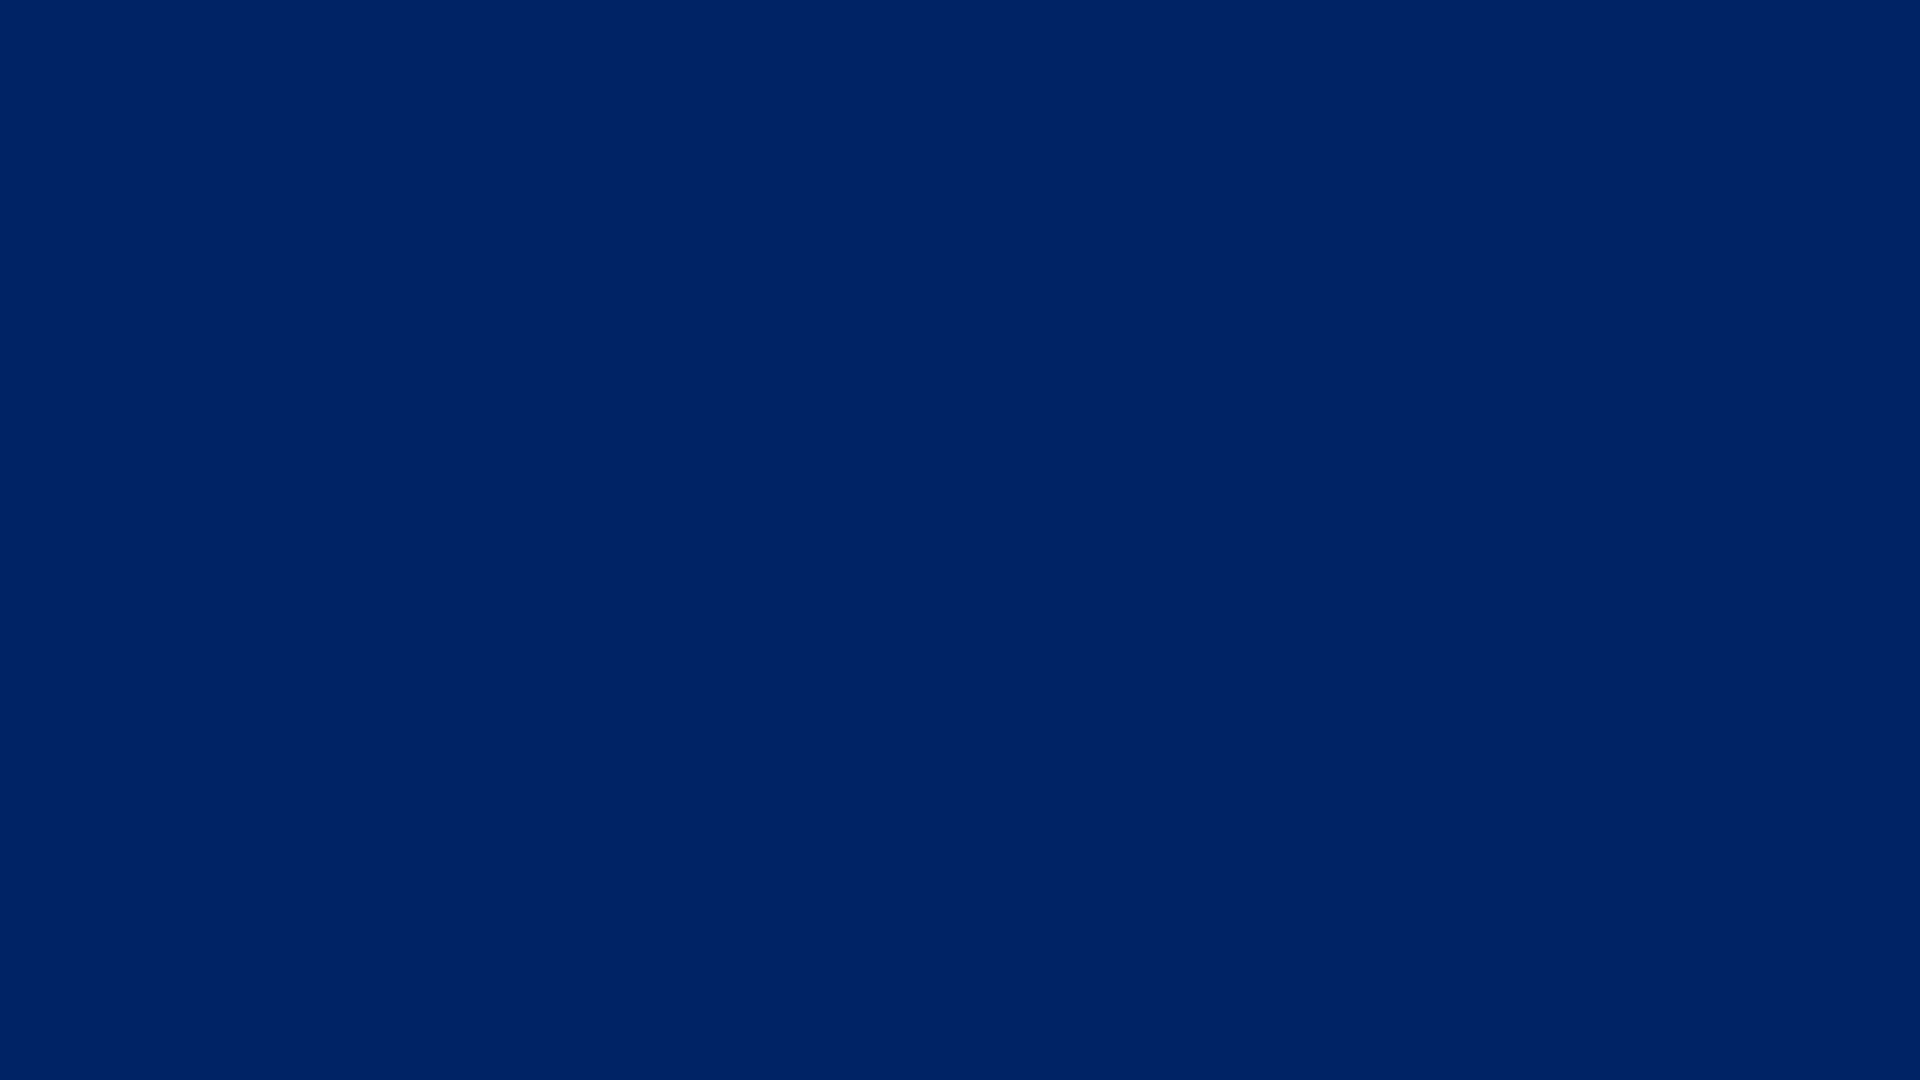 1920x1080 Royal Blue Traditional Solid Color Background